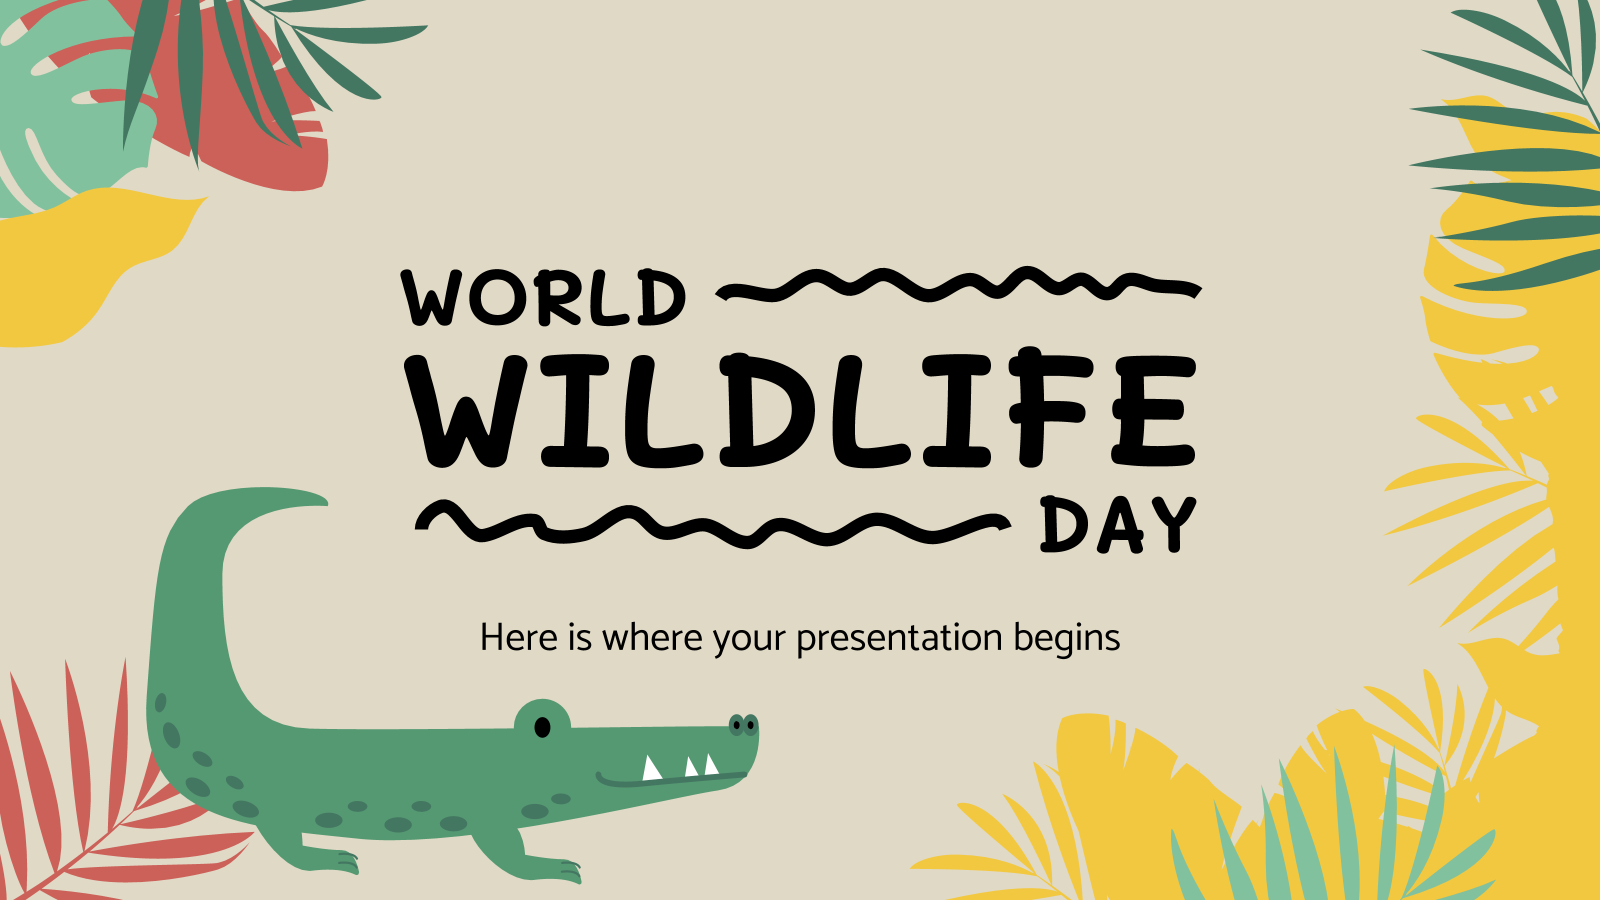 World Wildlife Day Google Slides Theme and PowerPoint Template.